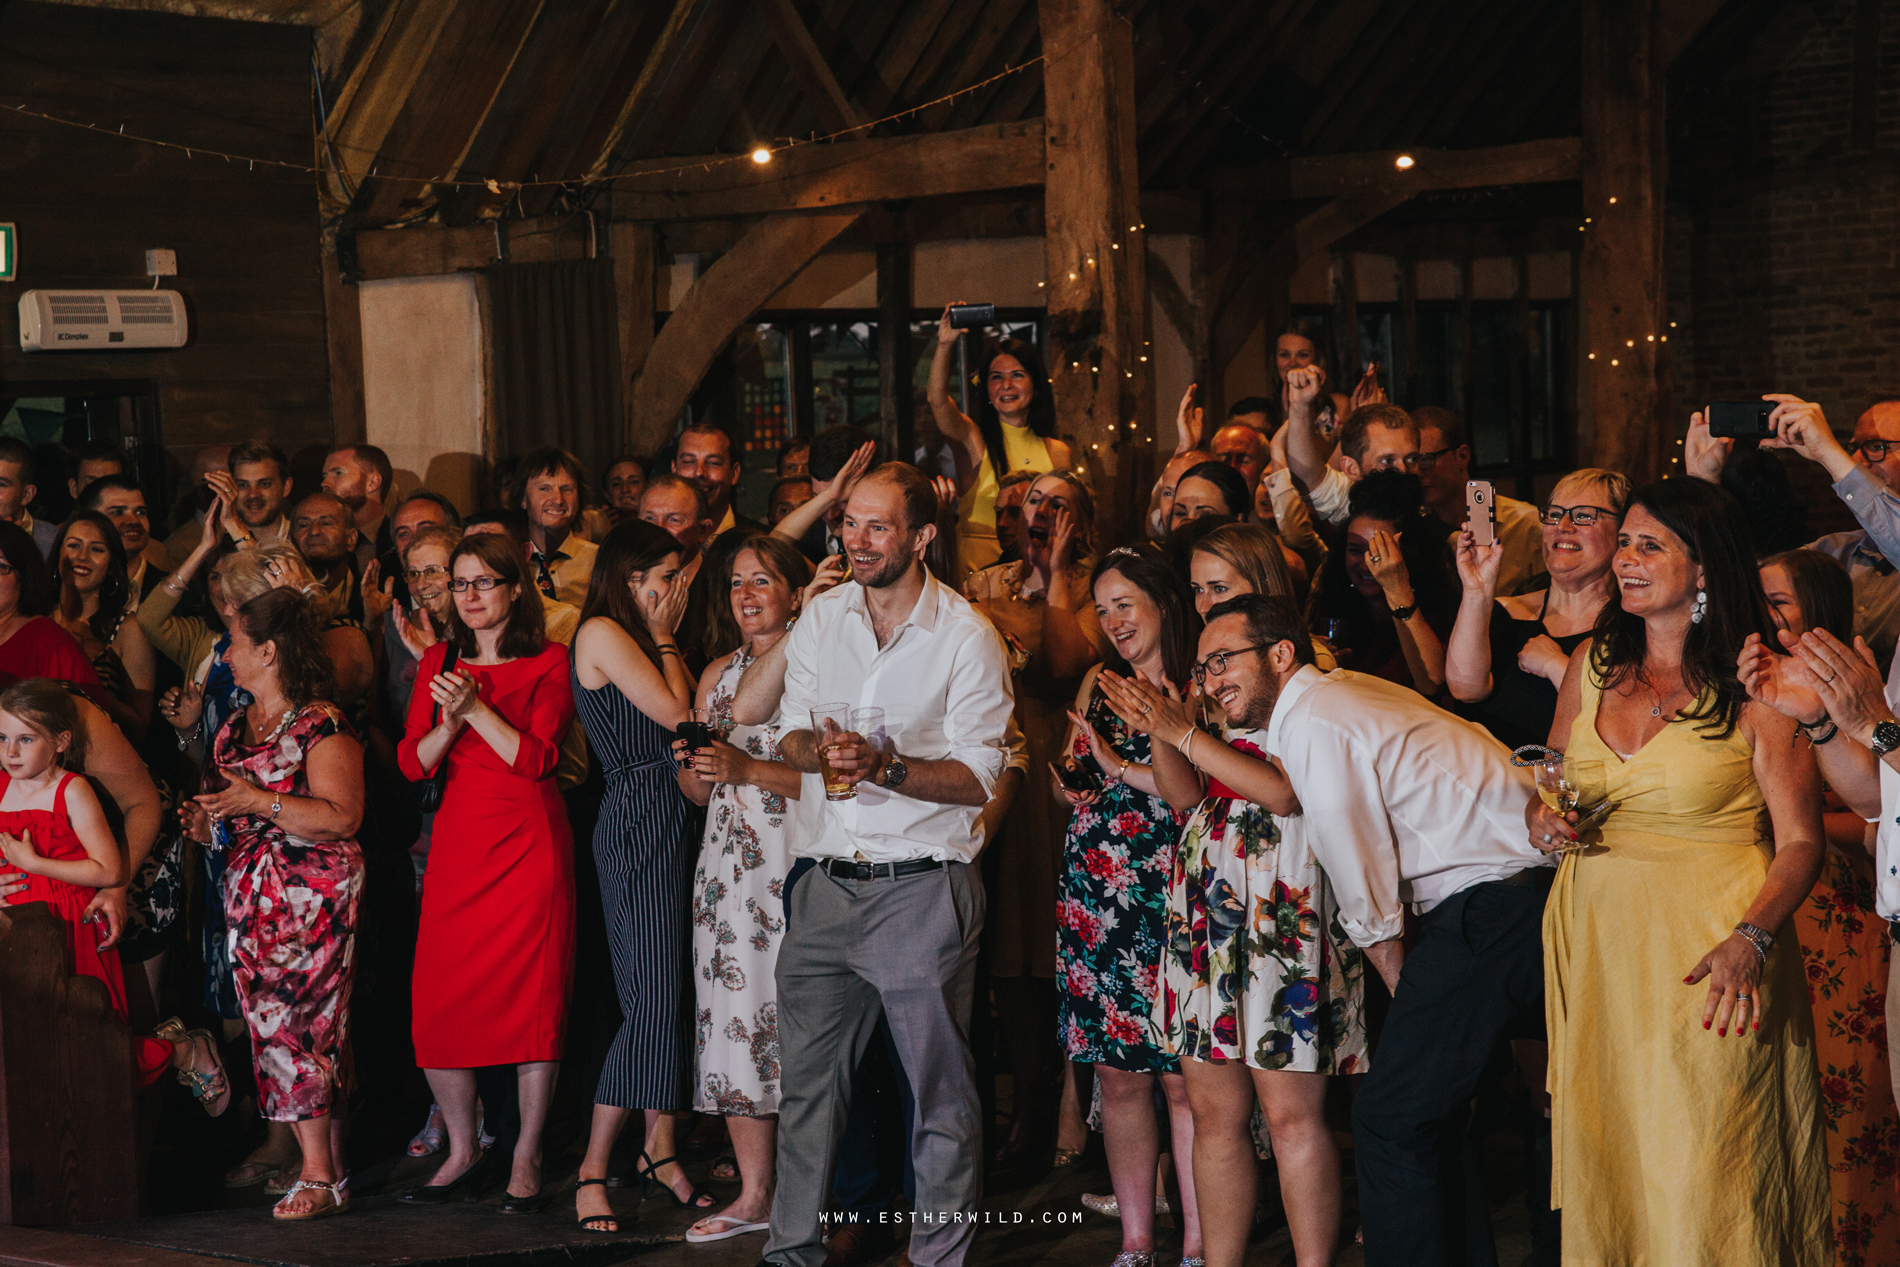 The_Red_Barn_Wedding_Kings_Lynn_Norfolk_IMG_3058.jpg